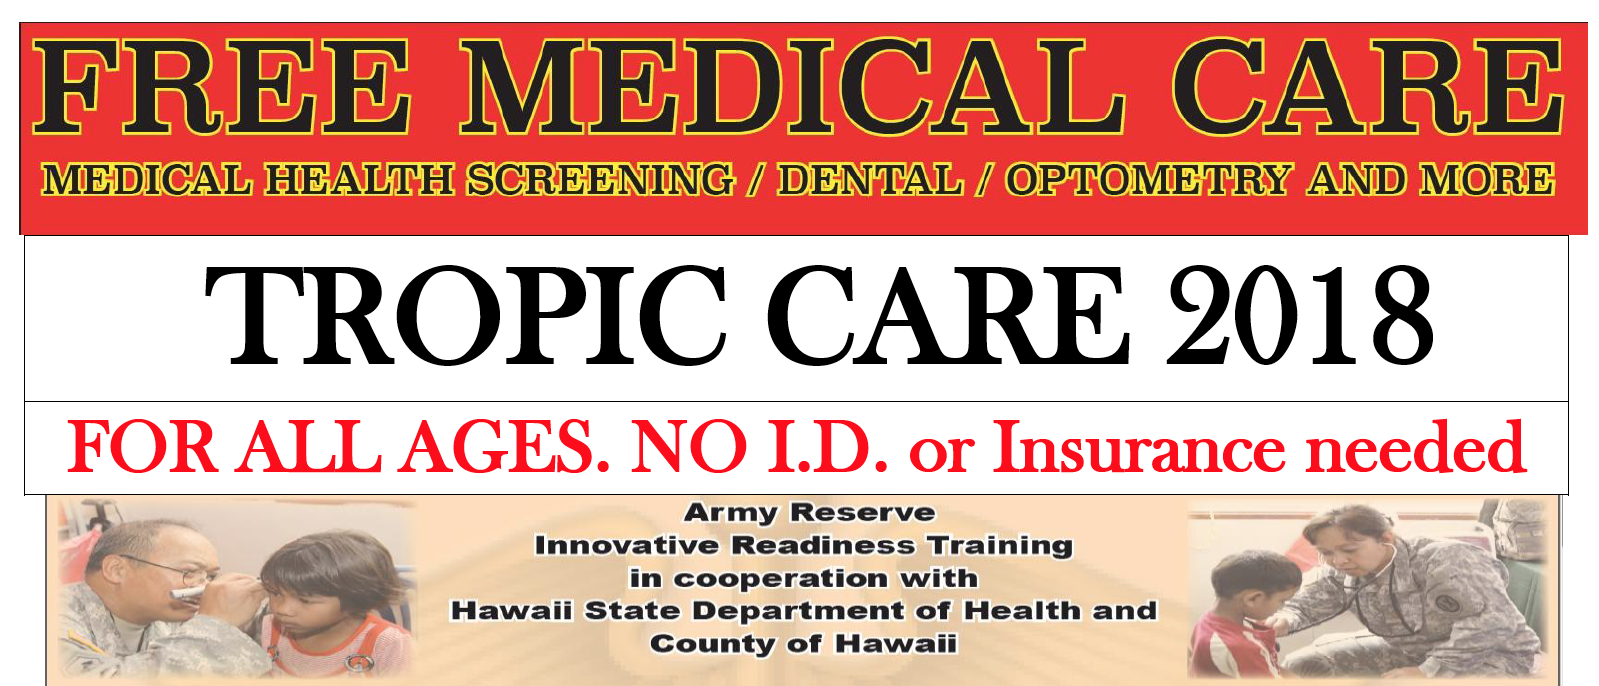 Free Medical Care - Health / Dental / Optometry screenings at Tropic Care 2018.  For all Ages, No ID or Insurance needed